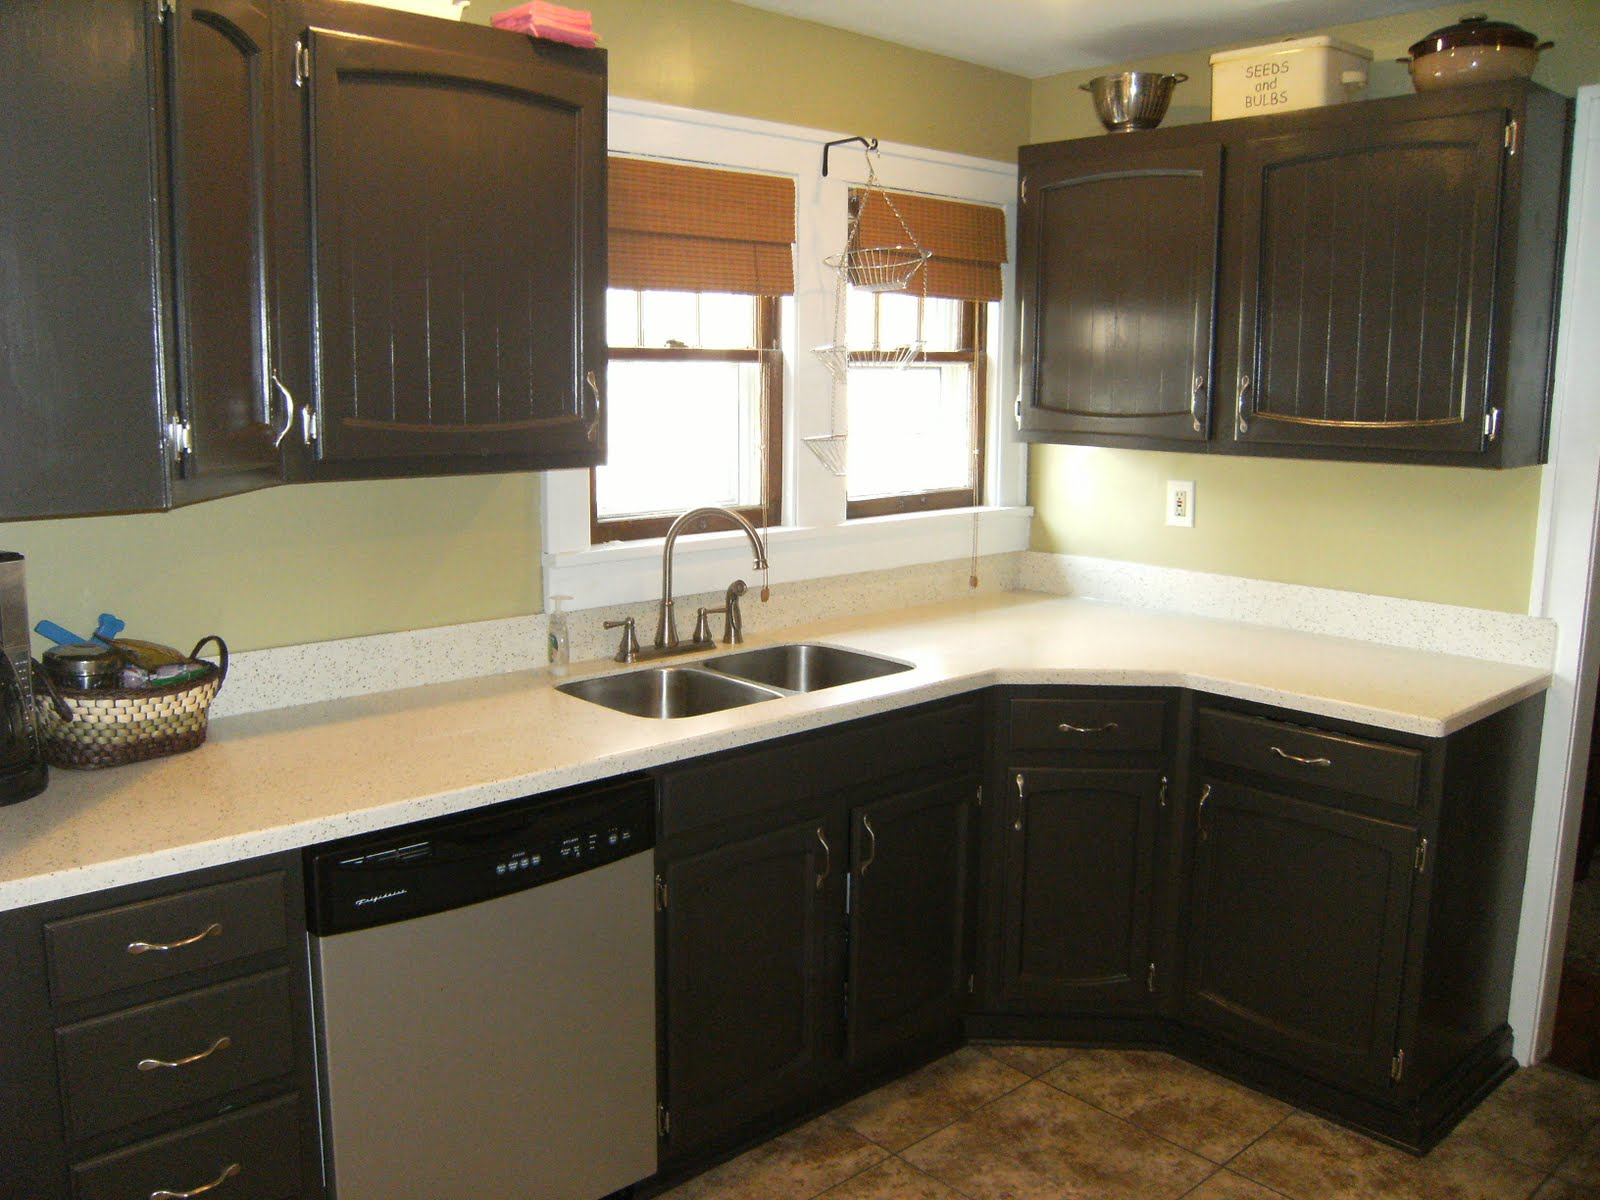 Painted projects for Are painted kitchen cabinets in style